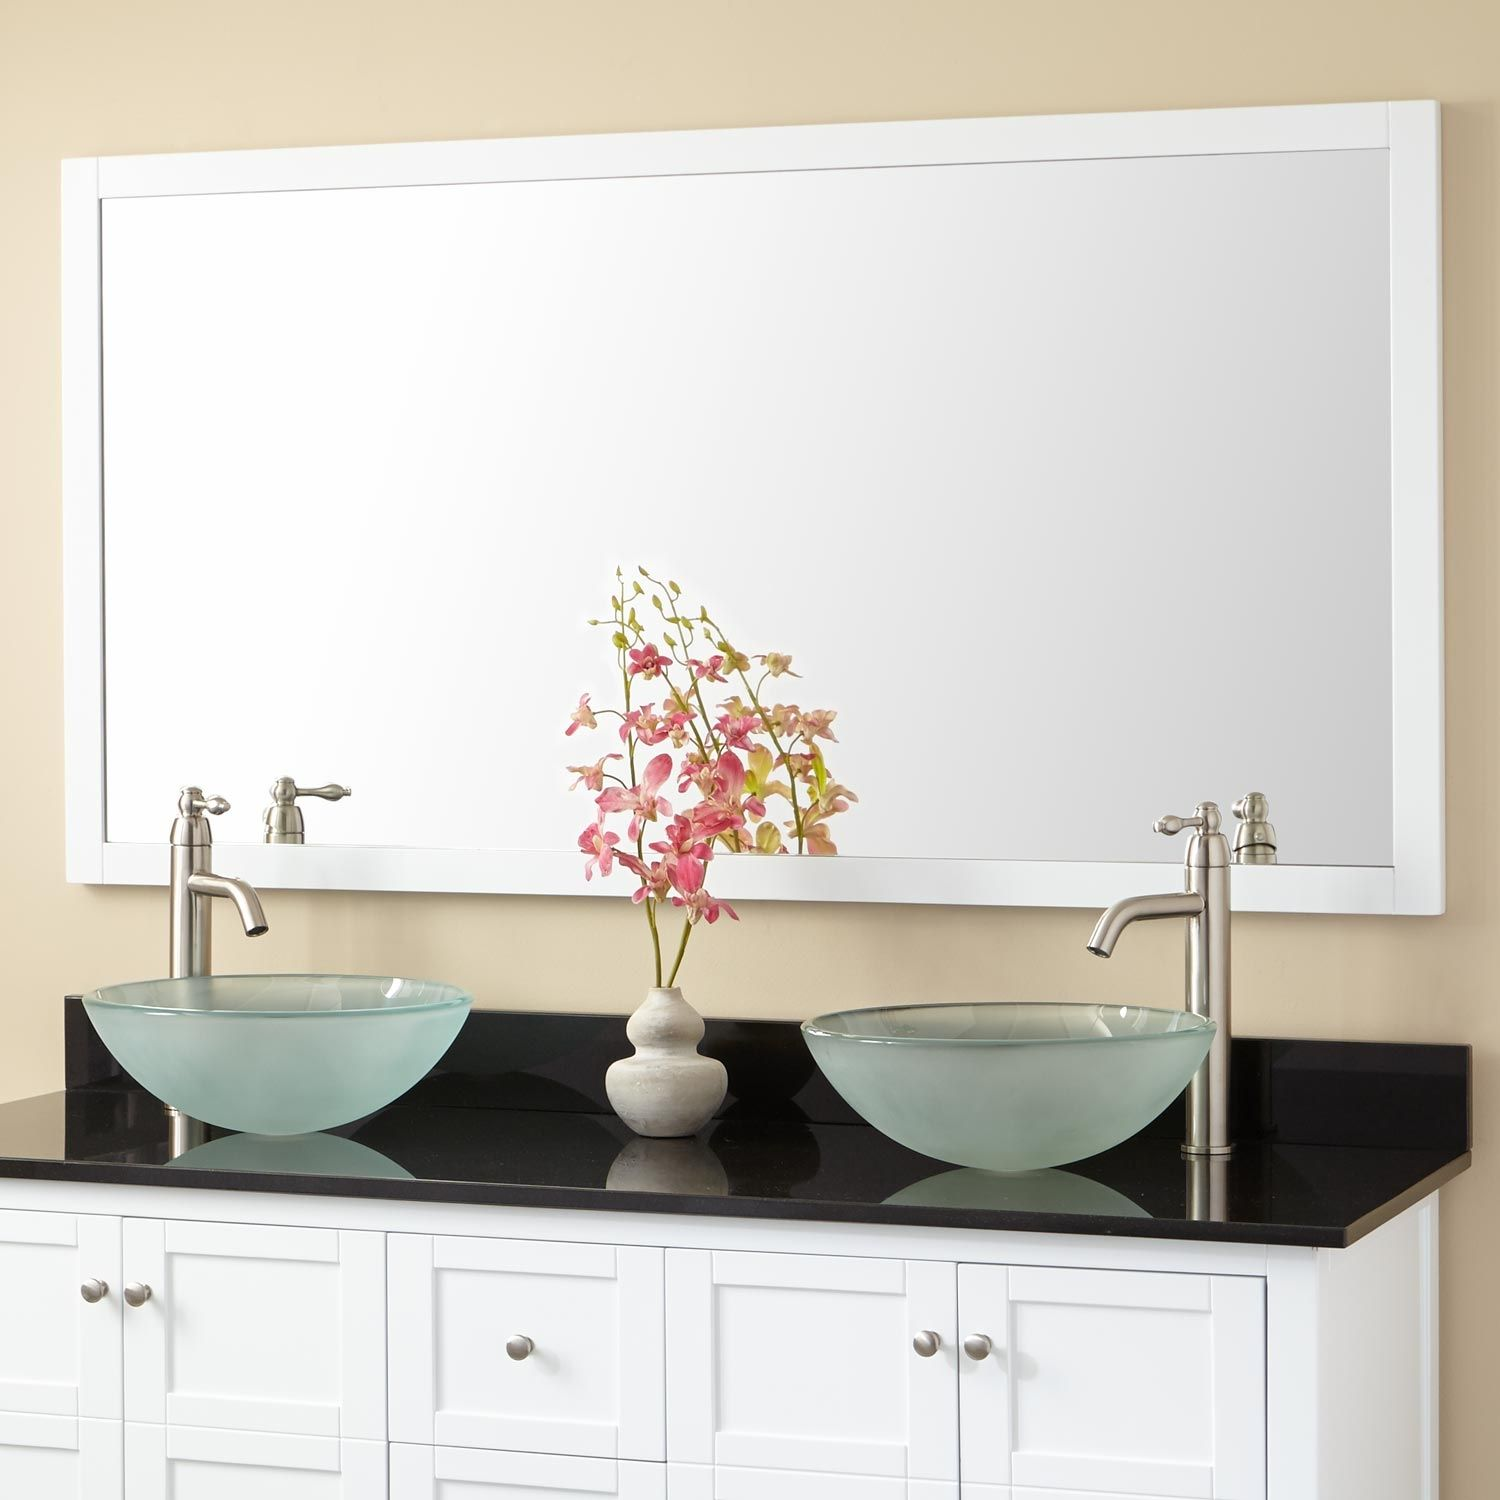 Bathroom mirrors at menards | bathroom design 2017-2018 | Pinterest ...